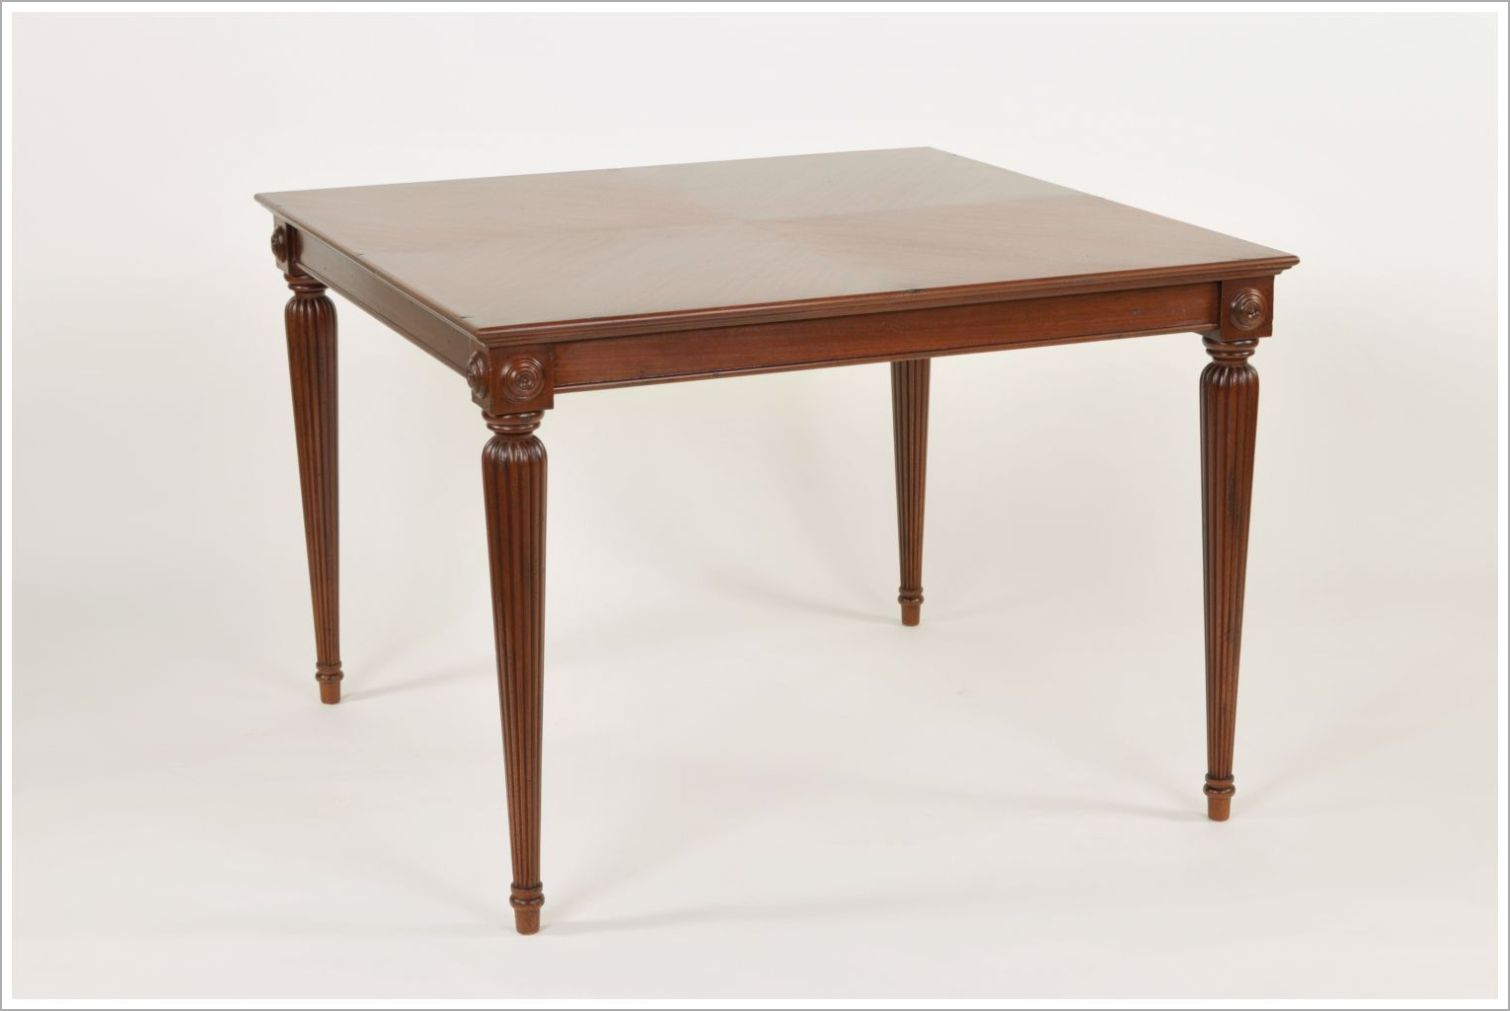 Custom Mahogany Restaurant Dining Table with Reverse Diamond Top and Carved Legs